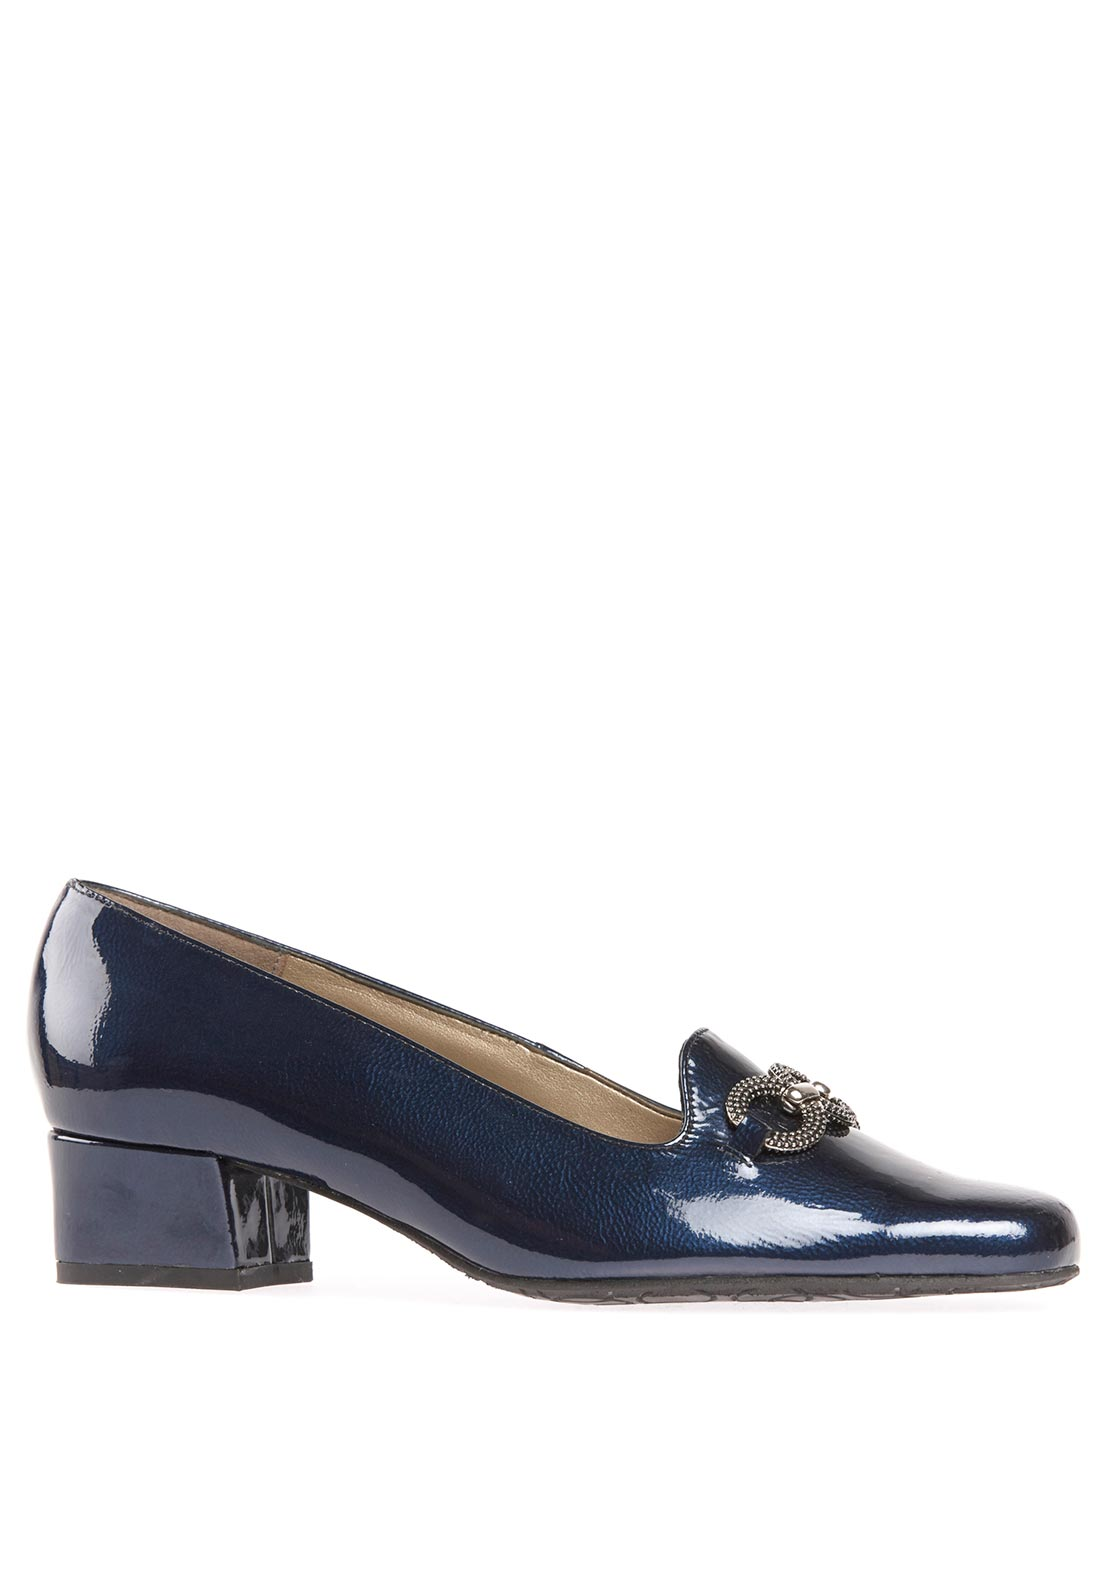 Van Dal Womens Twilight Ring Detail Heeled Patent Leather Shoe, Navy